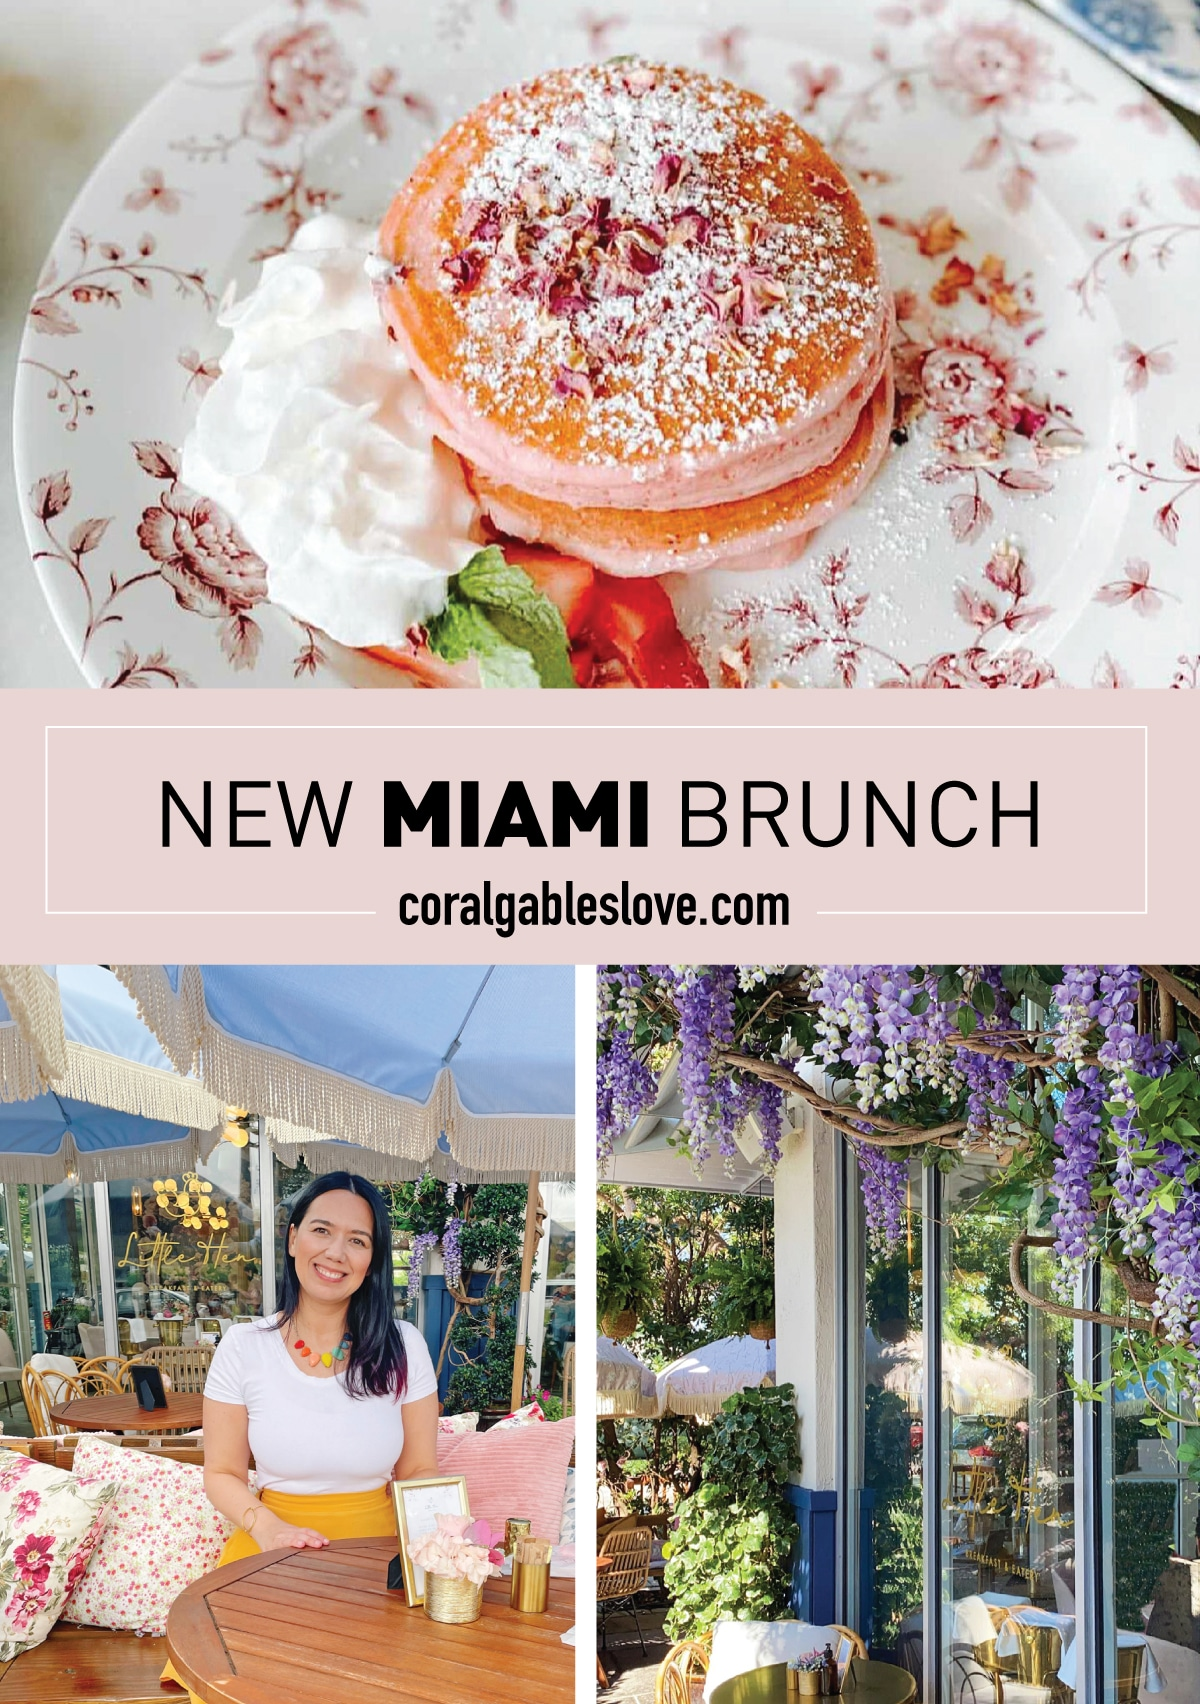 Miami Brunch Hostspot Little Hen in Midtown Miami with Instagrammable location and food outdoor seating